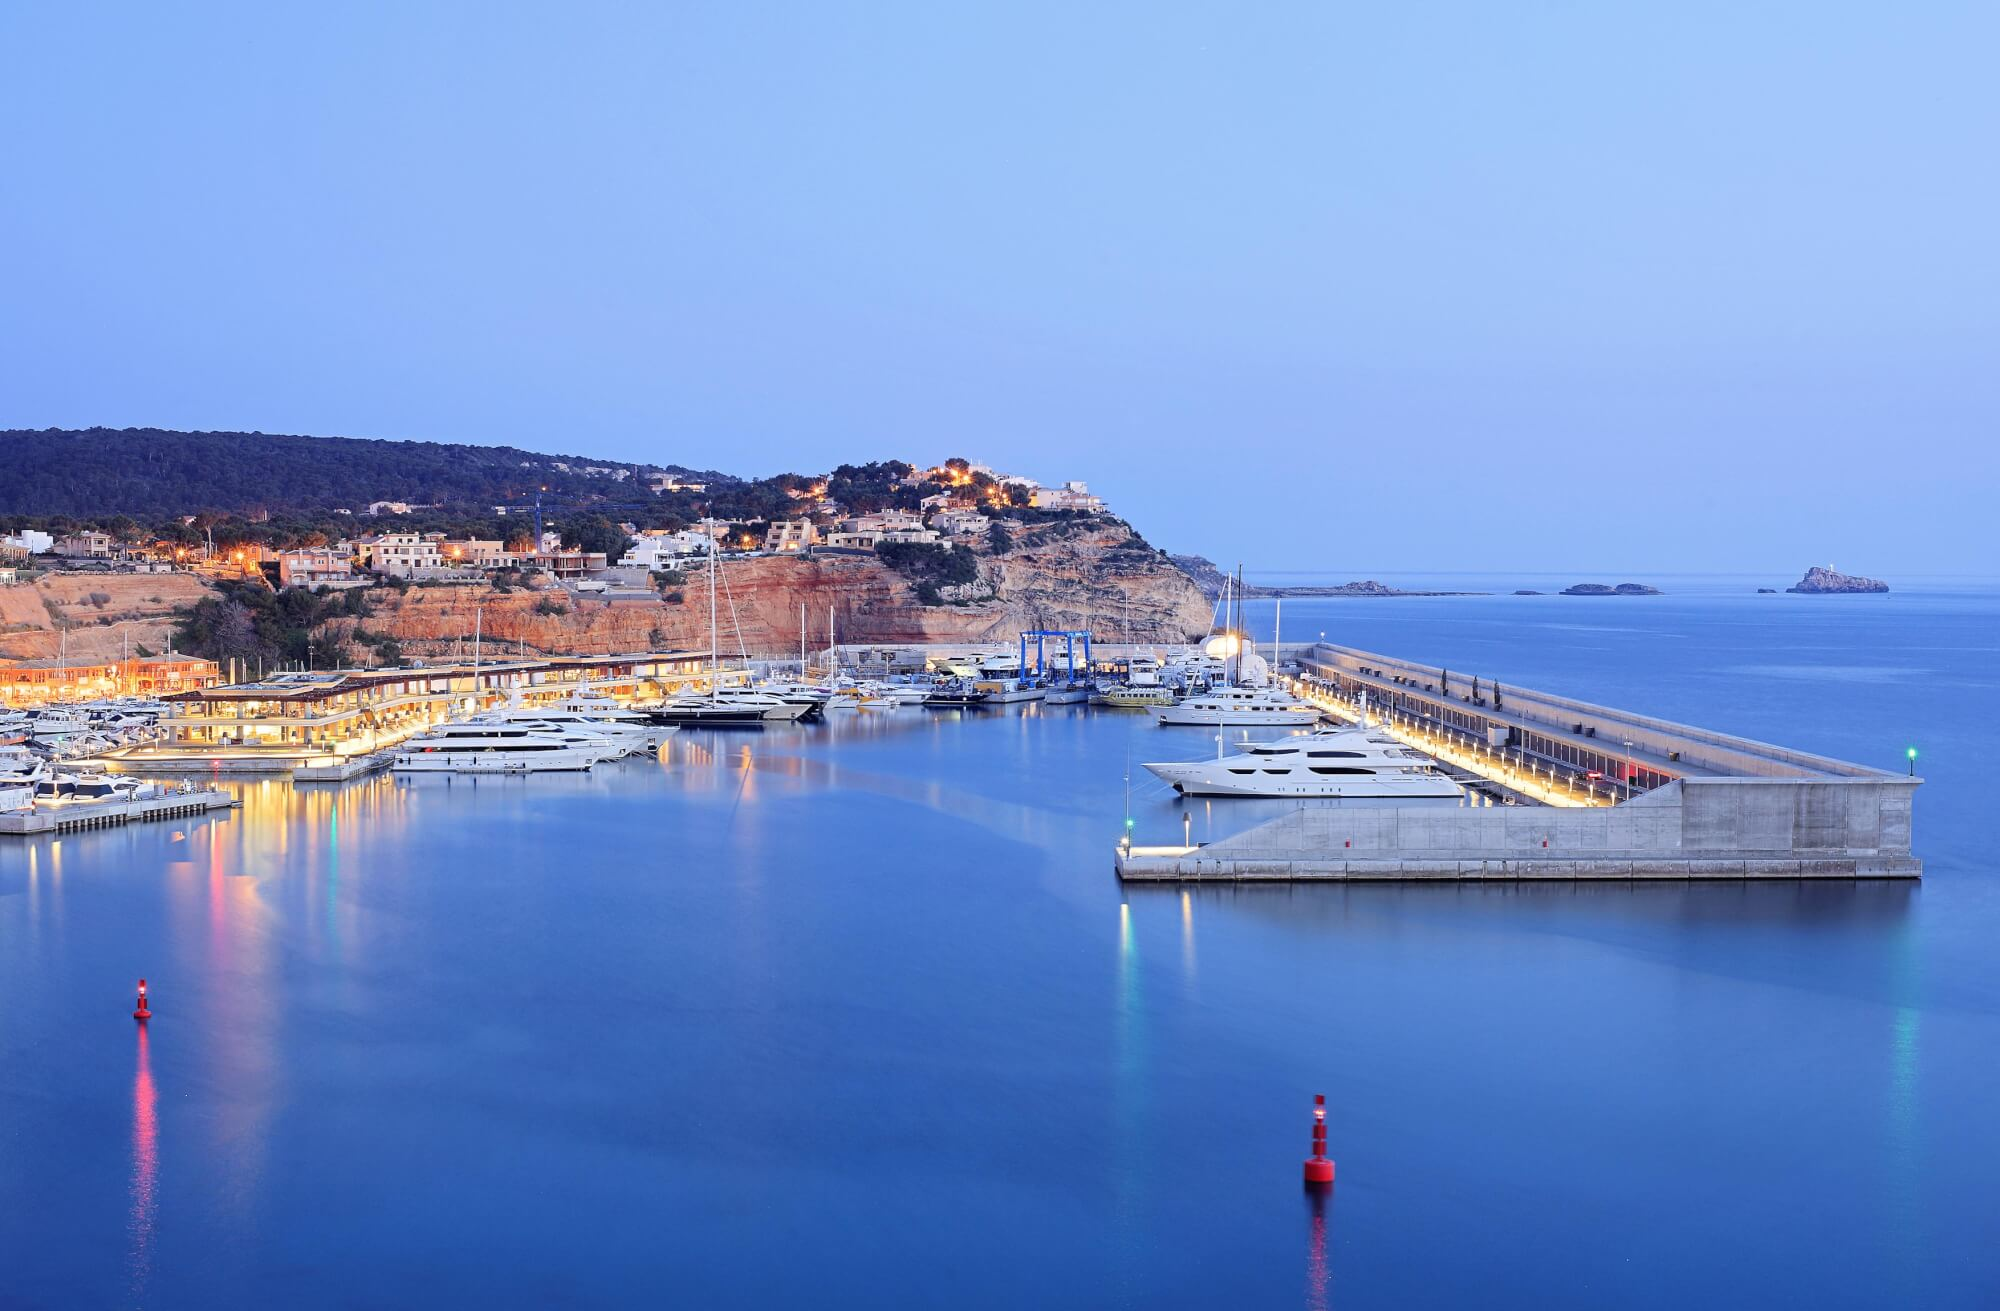 Port Adriano, the new harbor designed by Philippe Starck